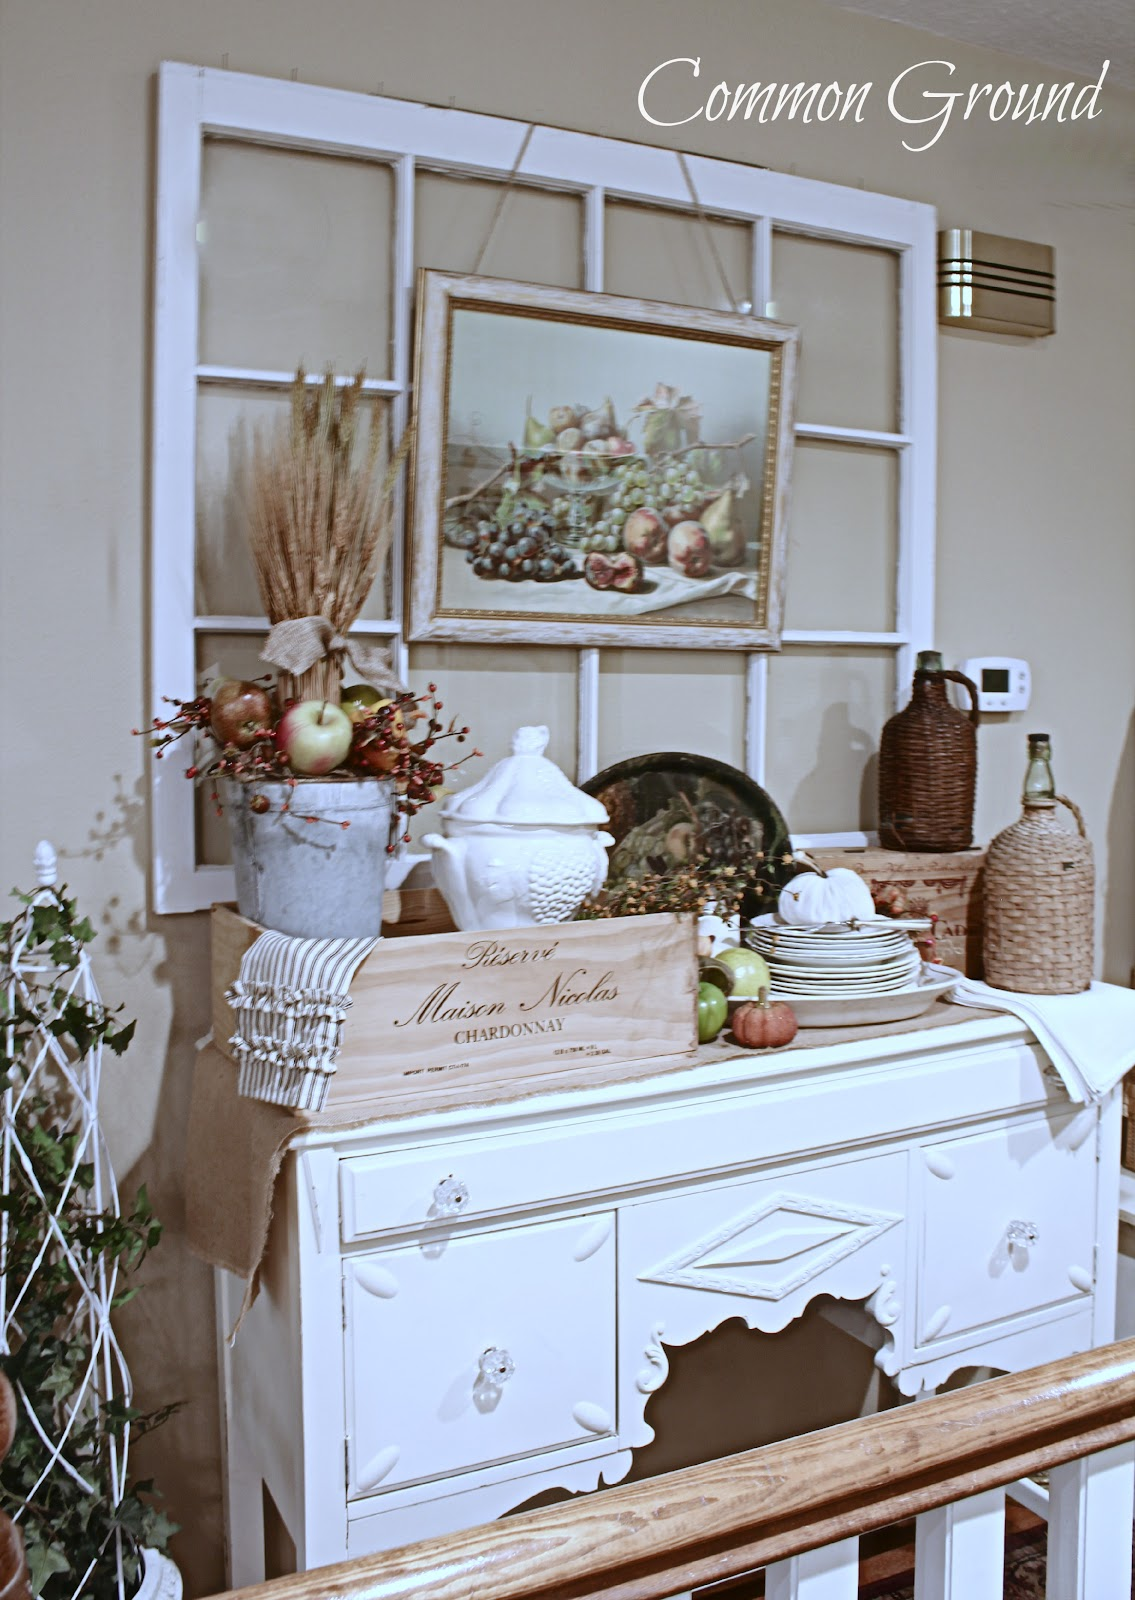 French Country Home Interior Design: Vintage Inspired French Country Home Tour